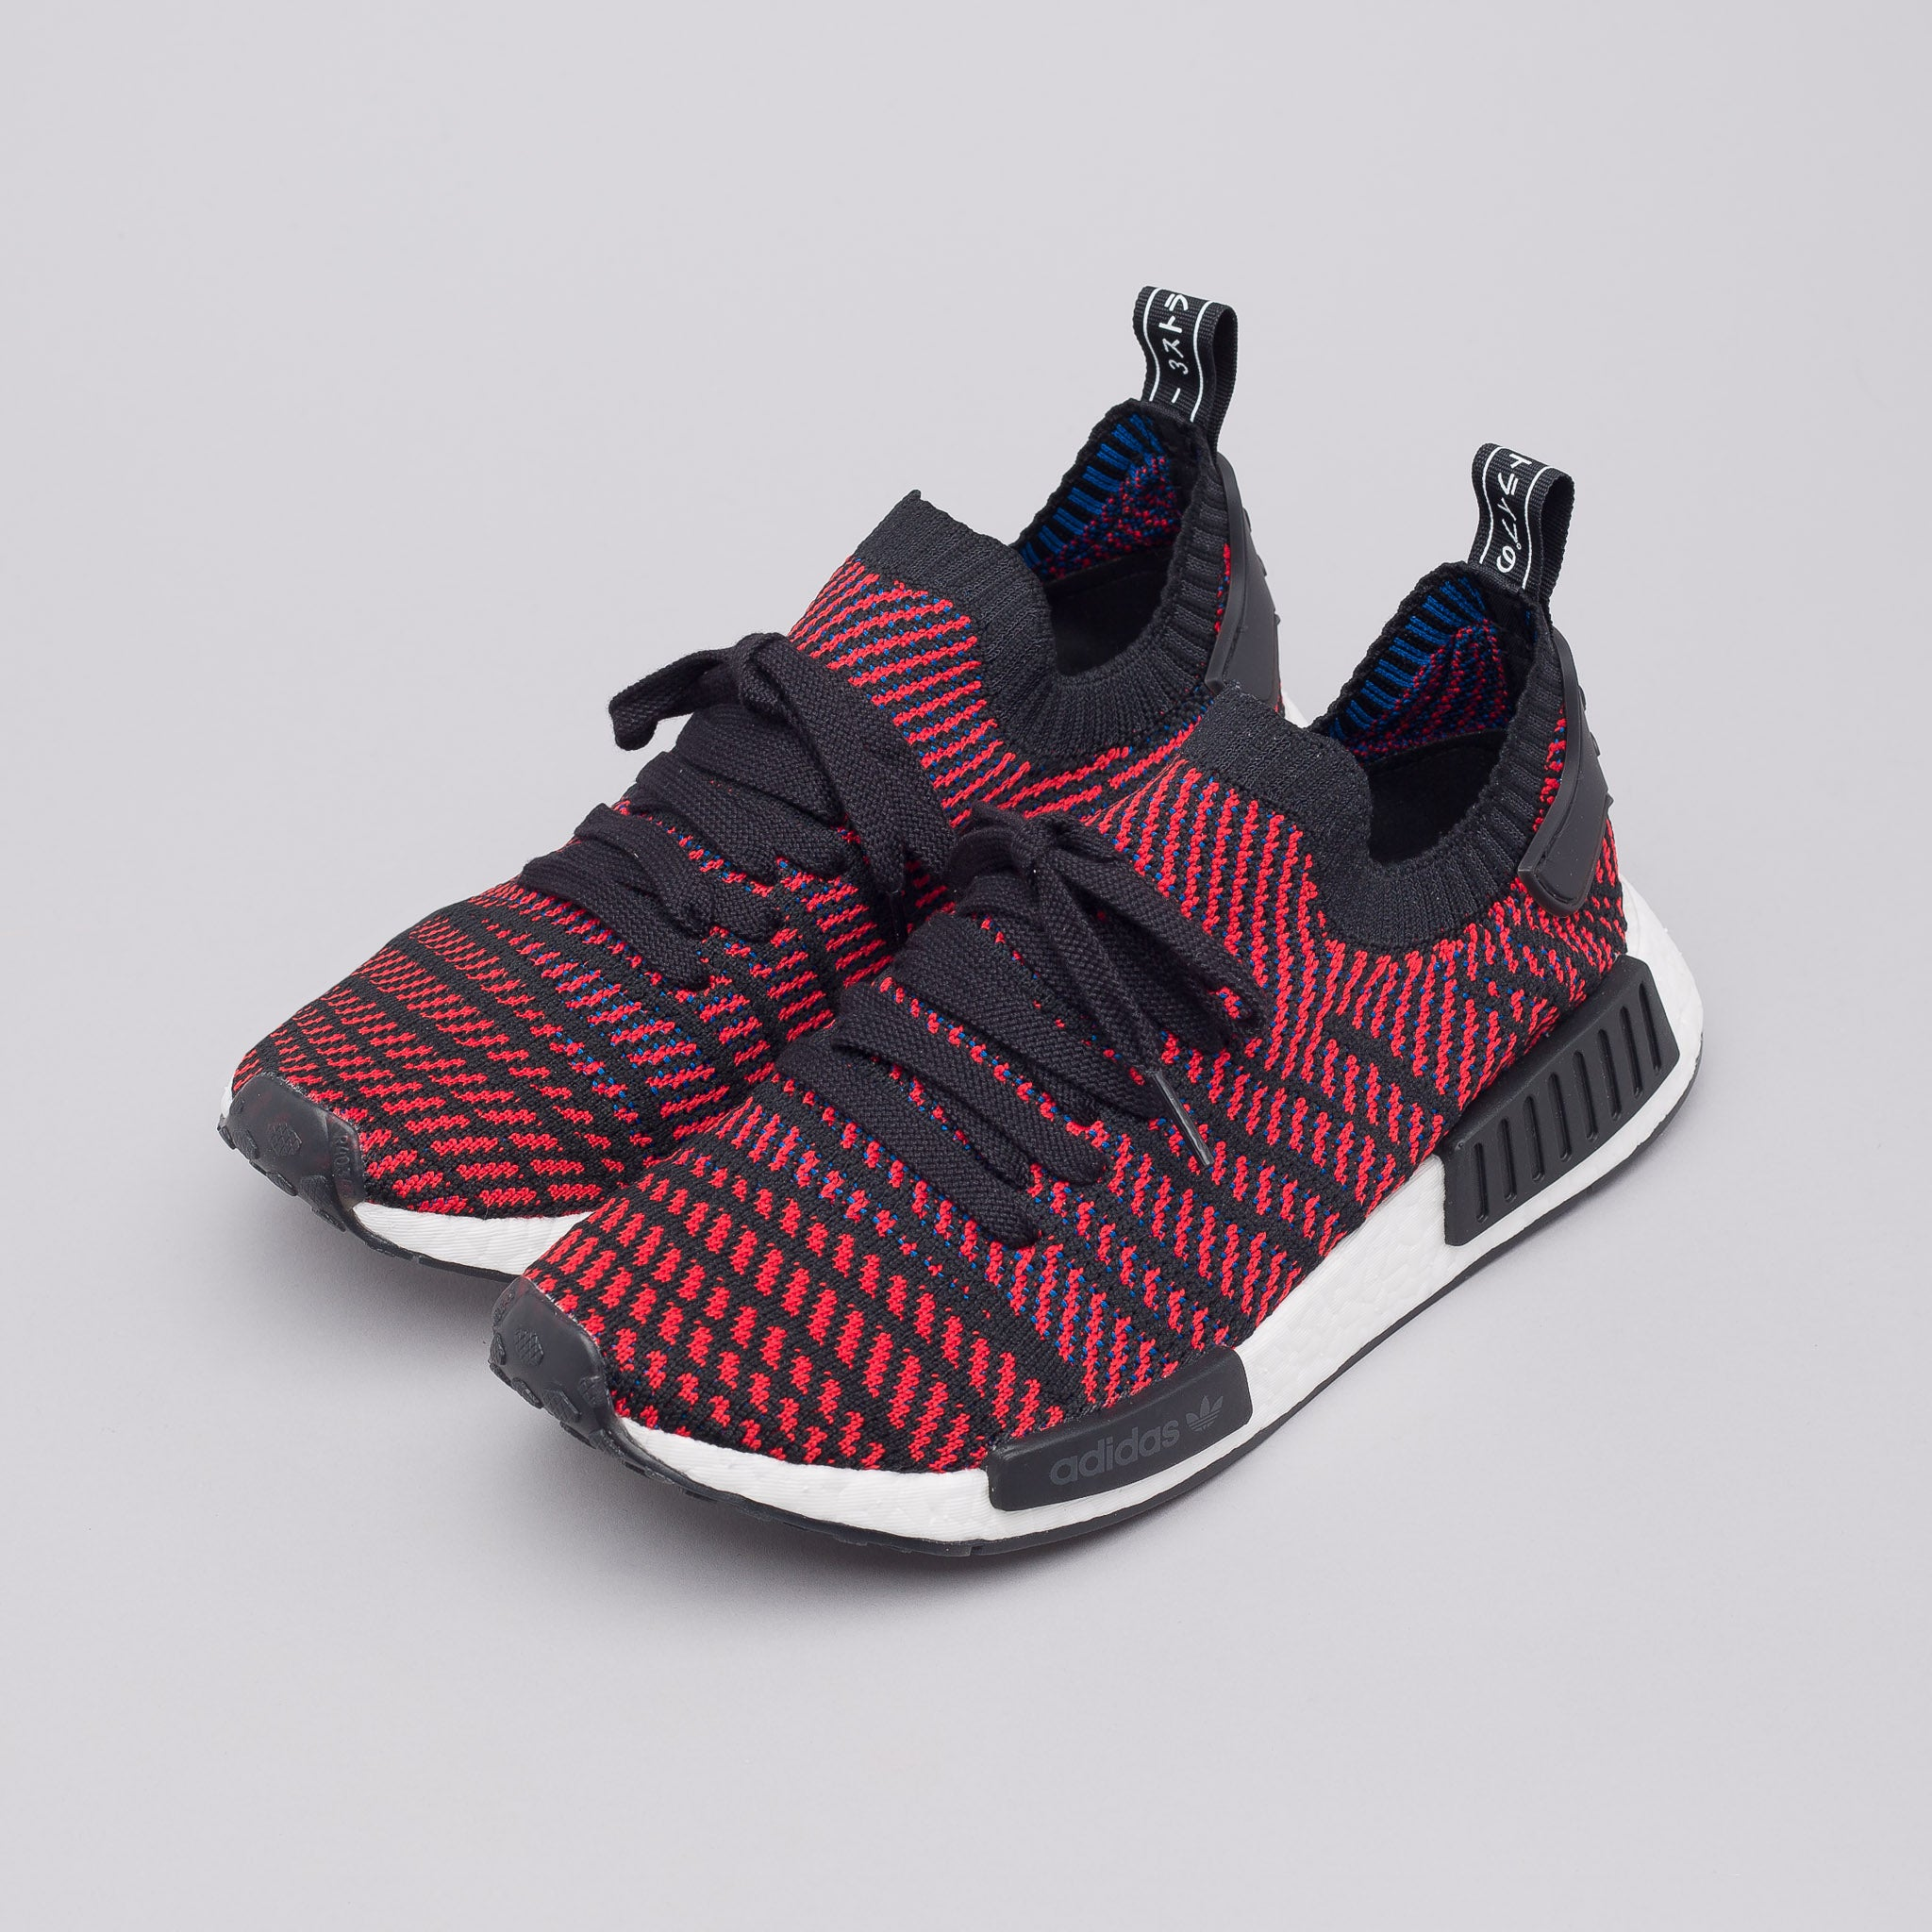 [Adidas] BY3035 NMD R1 Boost Women Running Shoes Sneakers